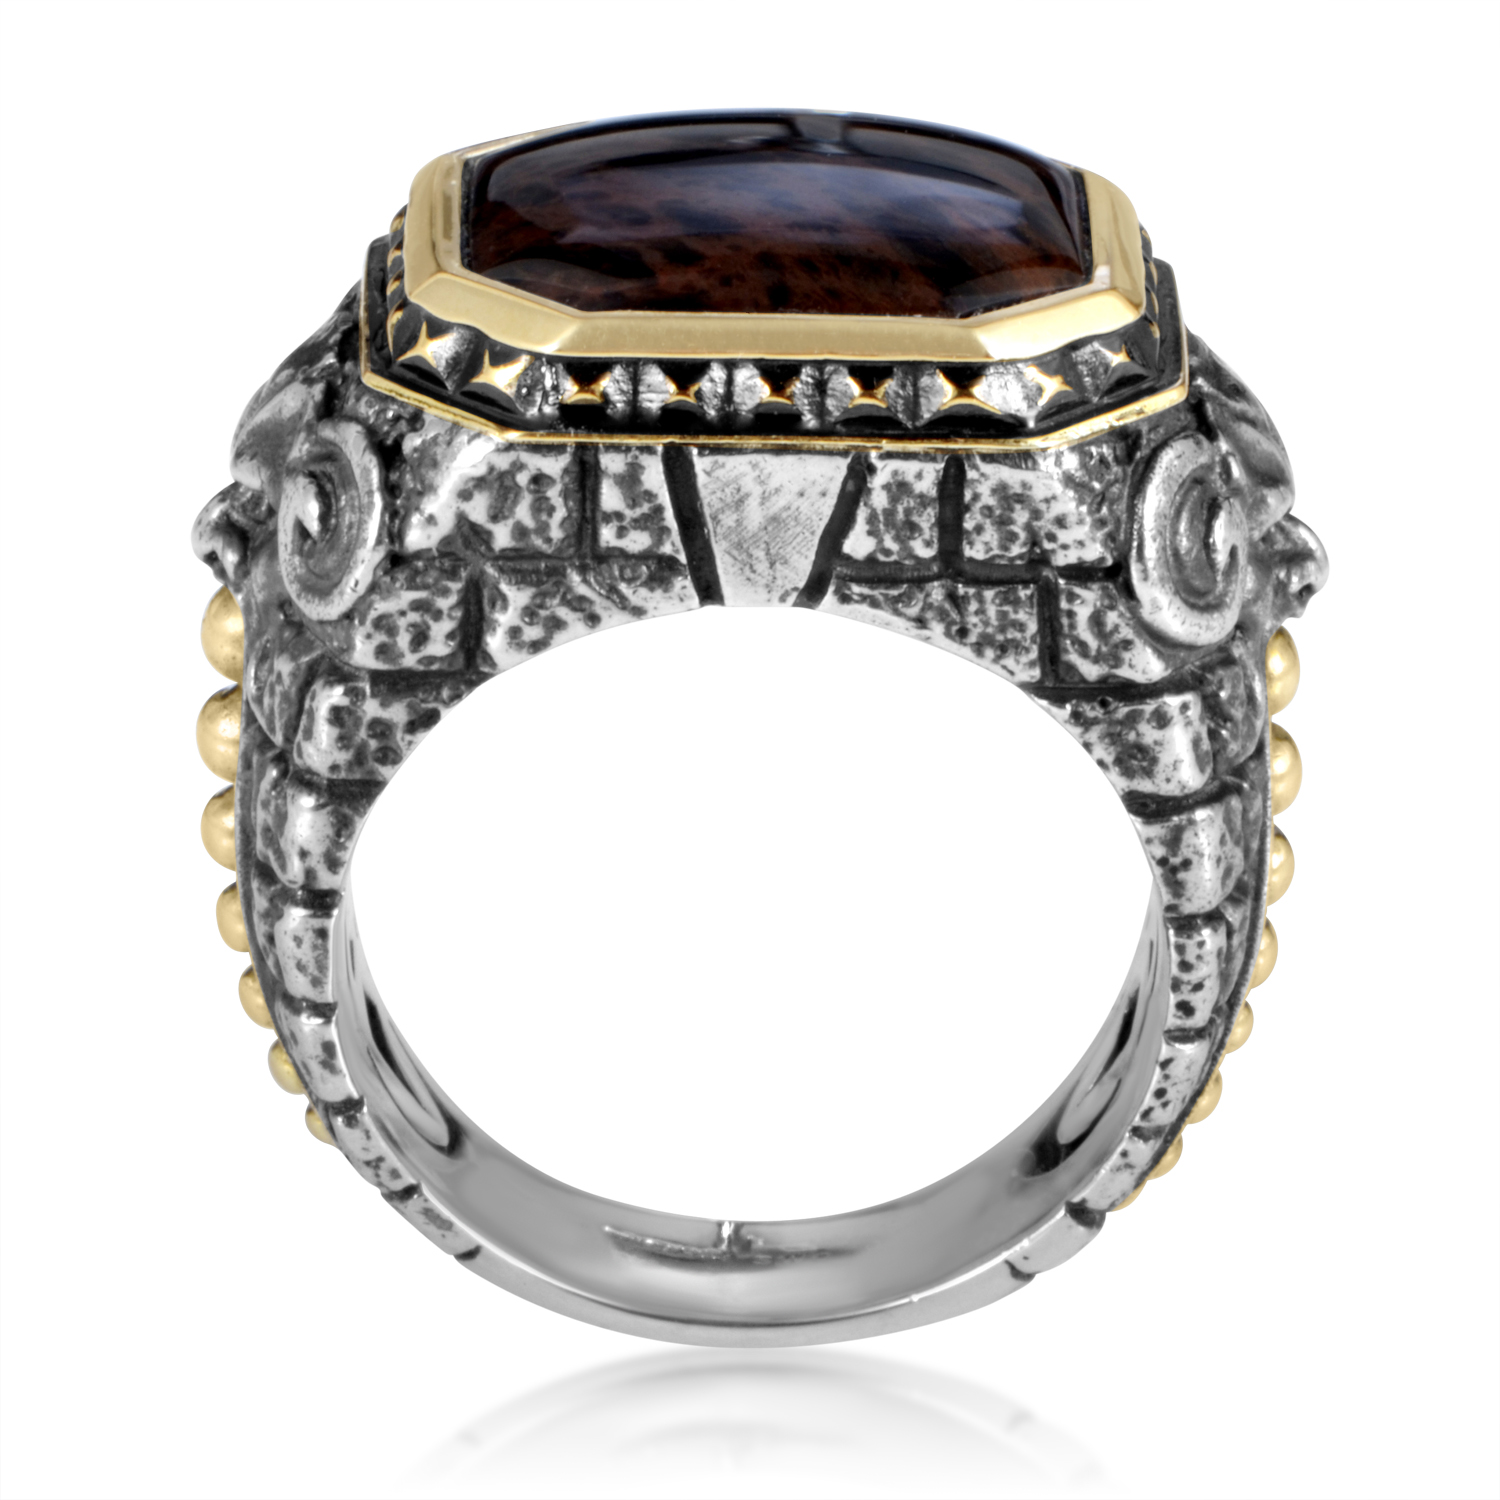 how to wear wedding ring and band spiderman wedding ring Spiderman Wedding Ring